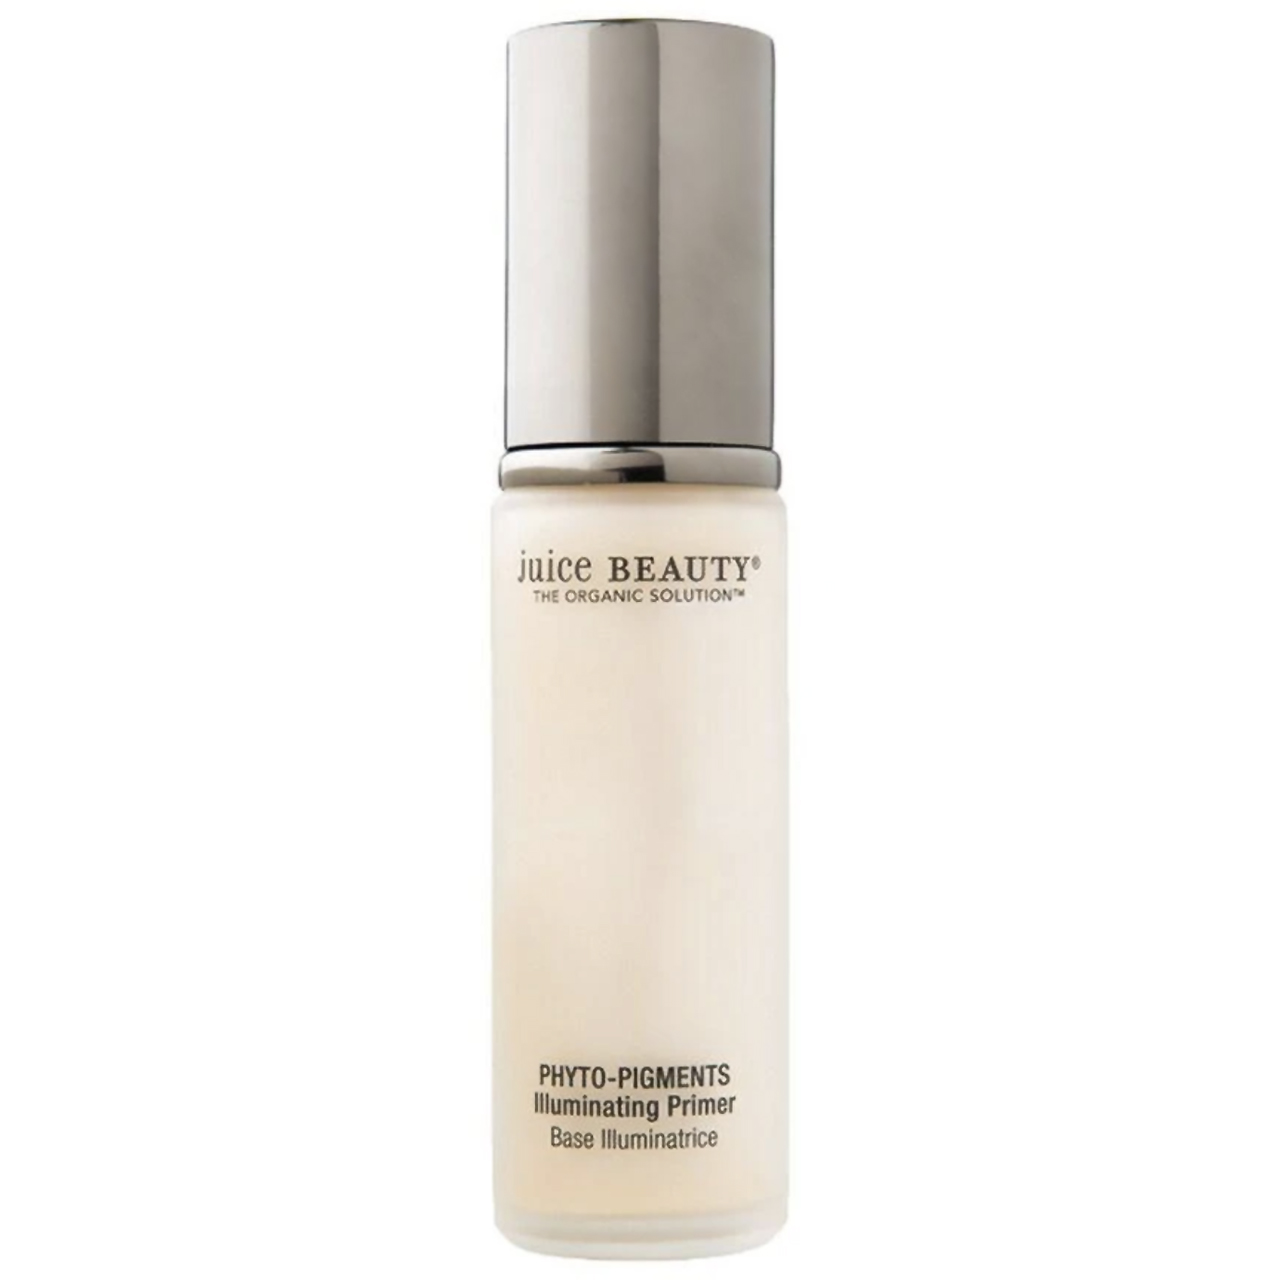 Best Water-Based Primers: Juice Beauty Phyto-Pigments Illuminating Primer